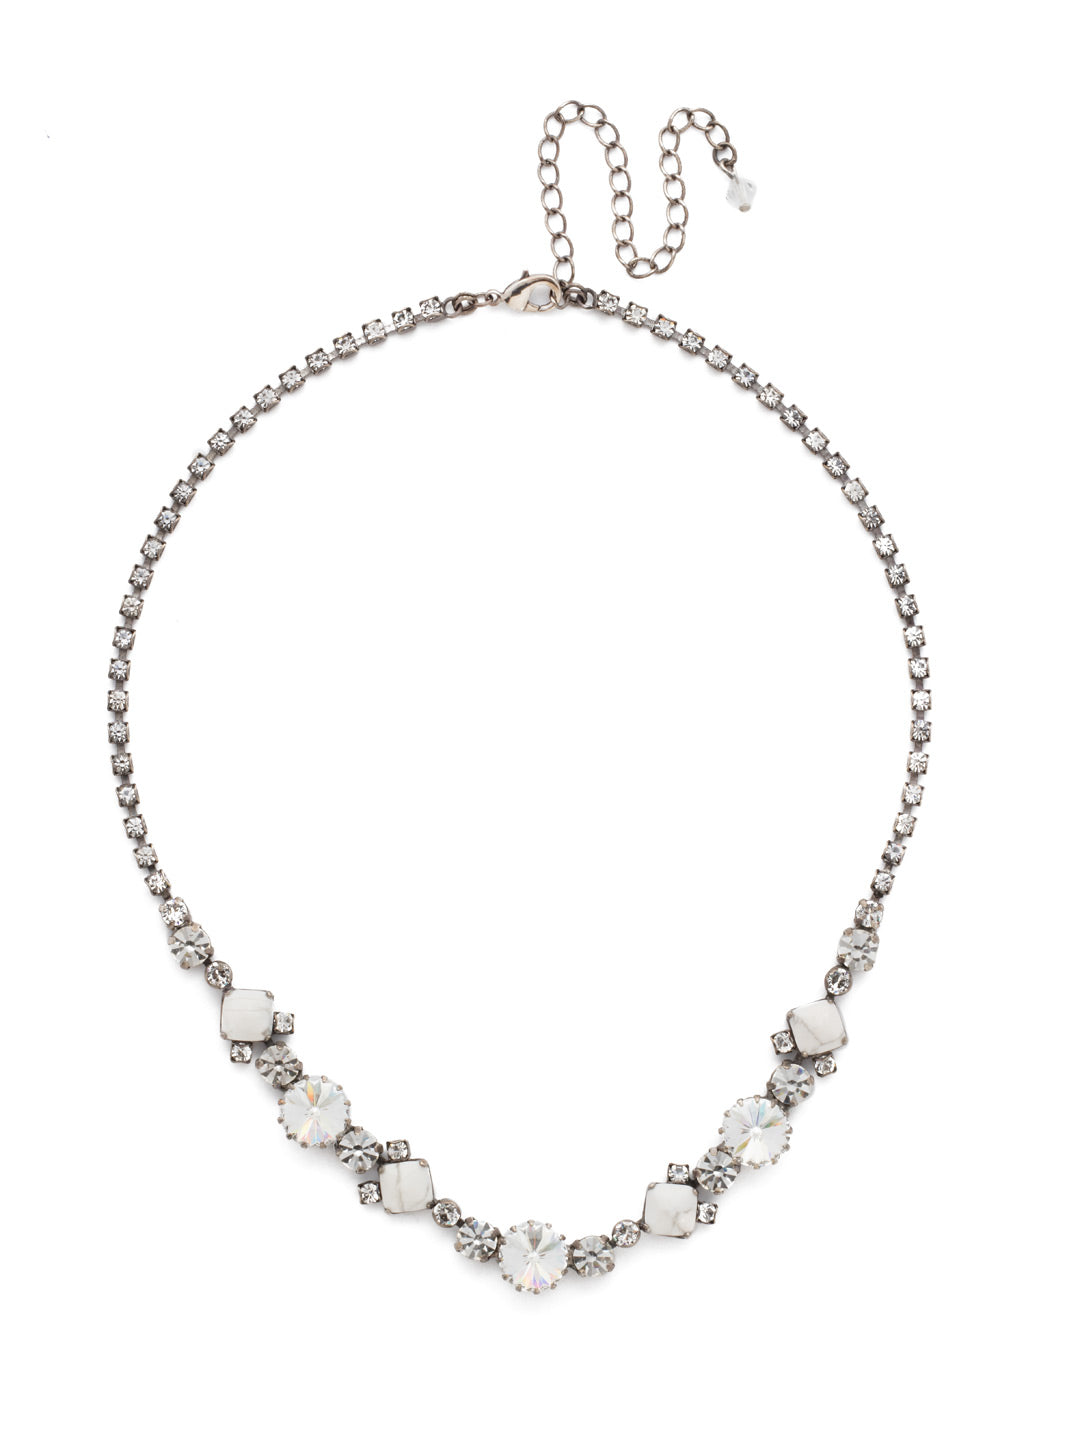 Classic Chiffon Line Necklace - NDH7ASCRY